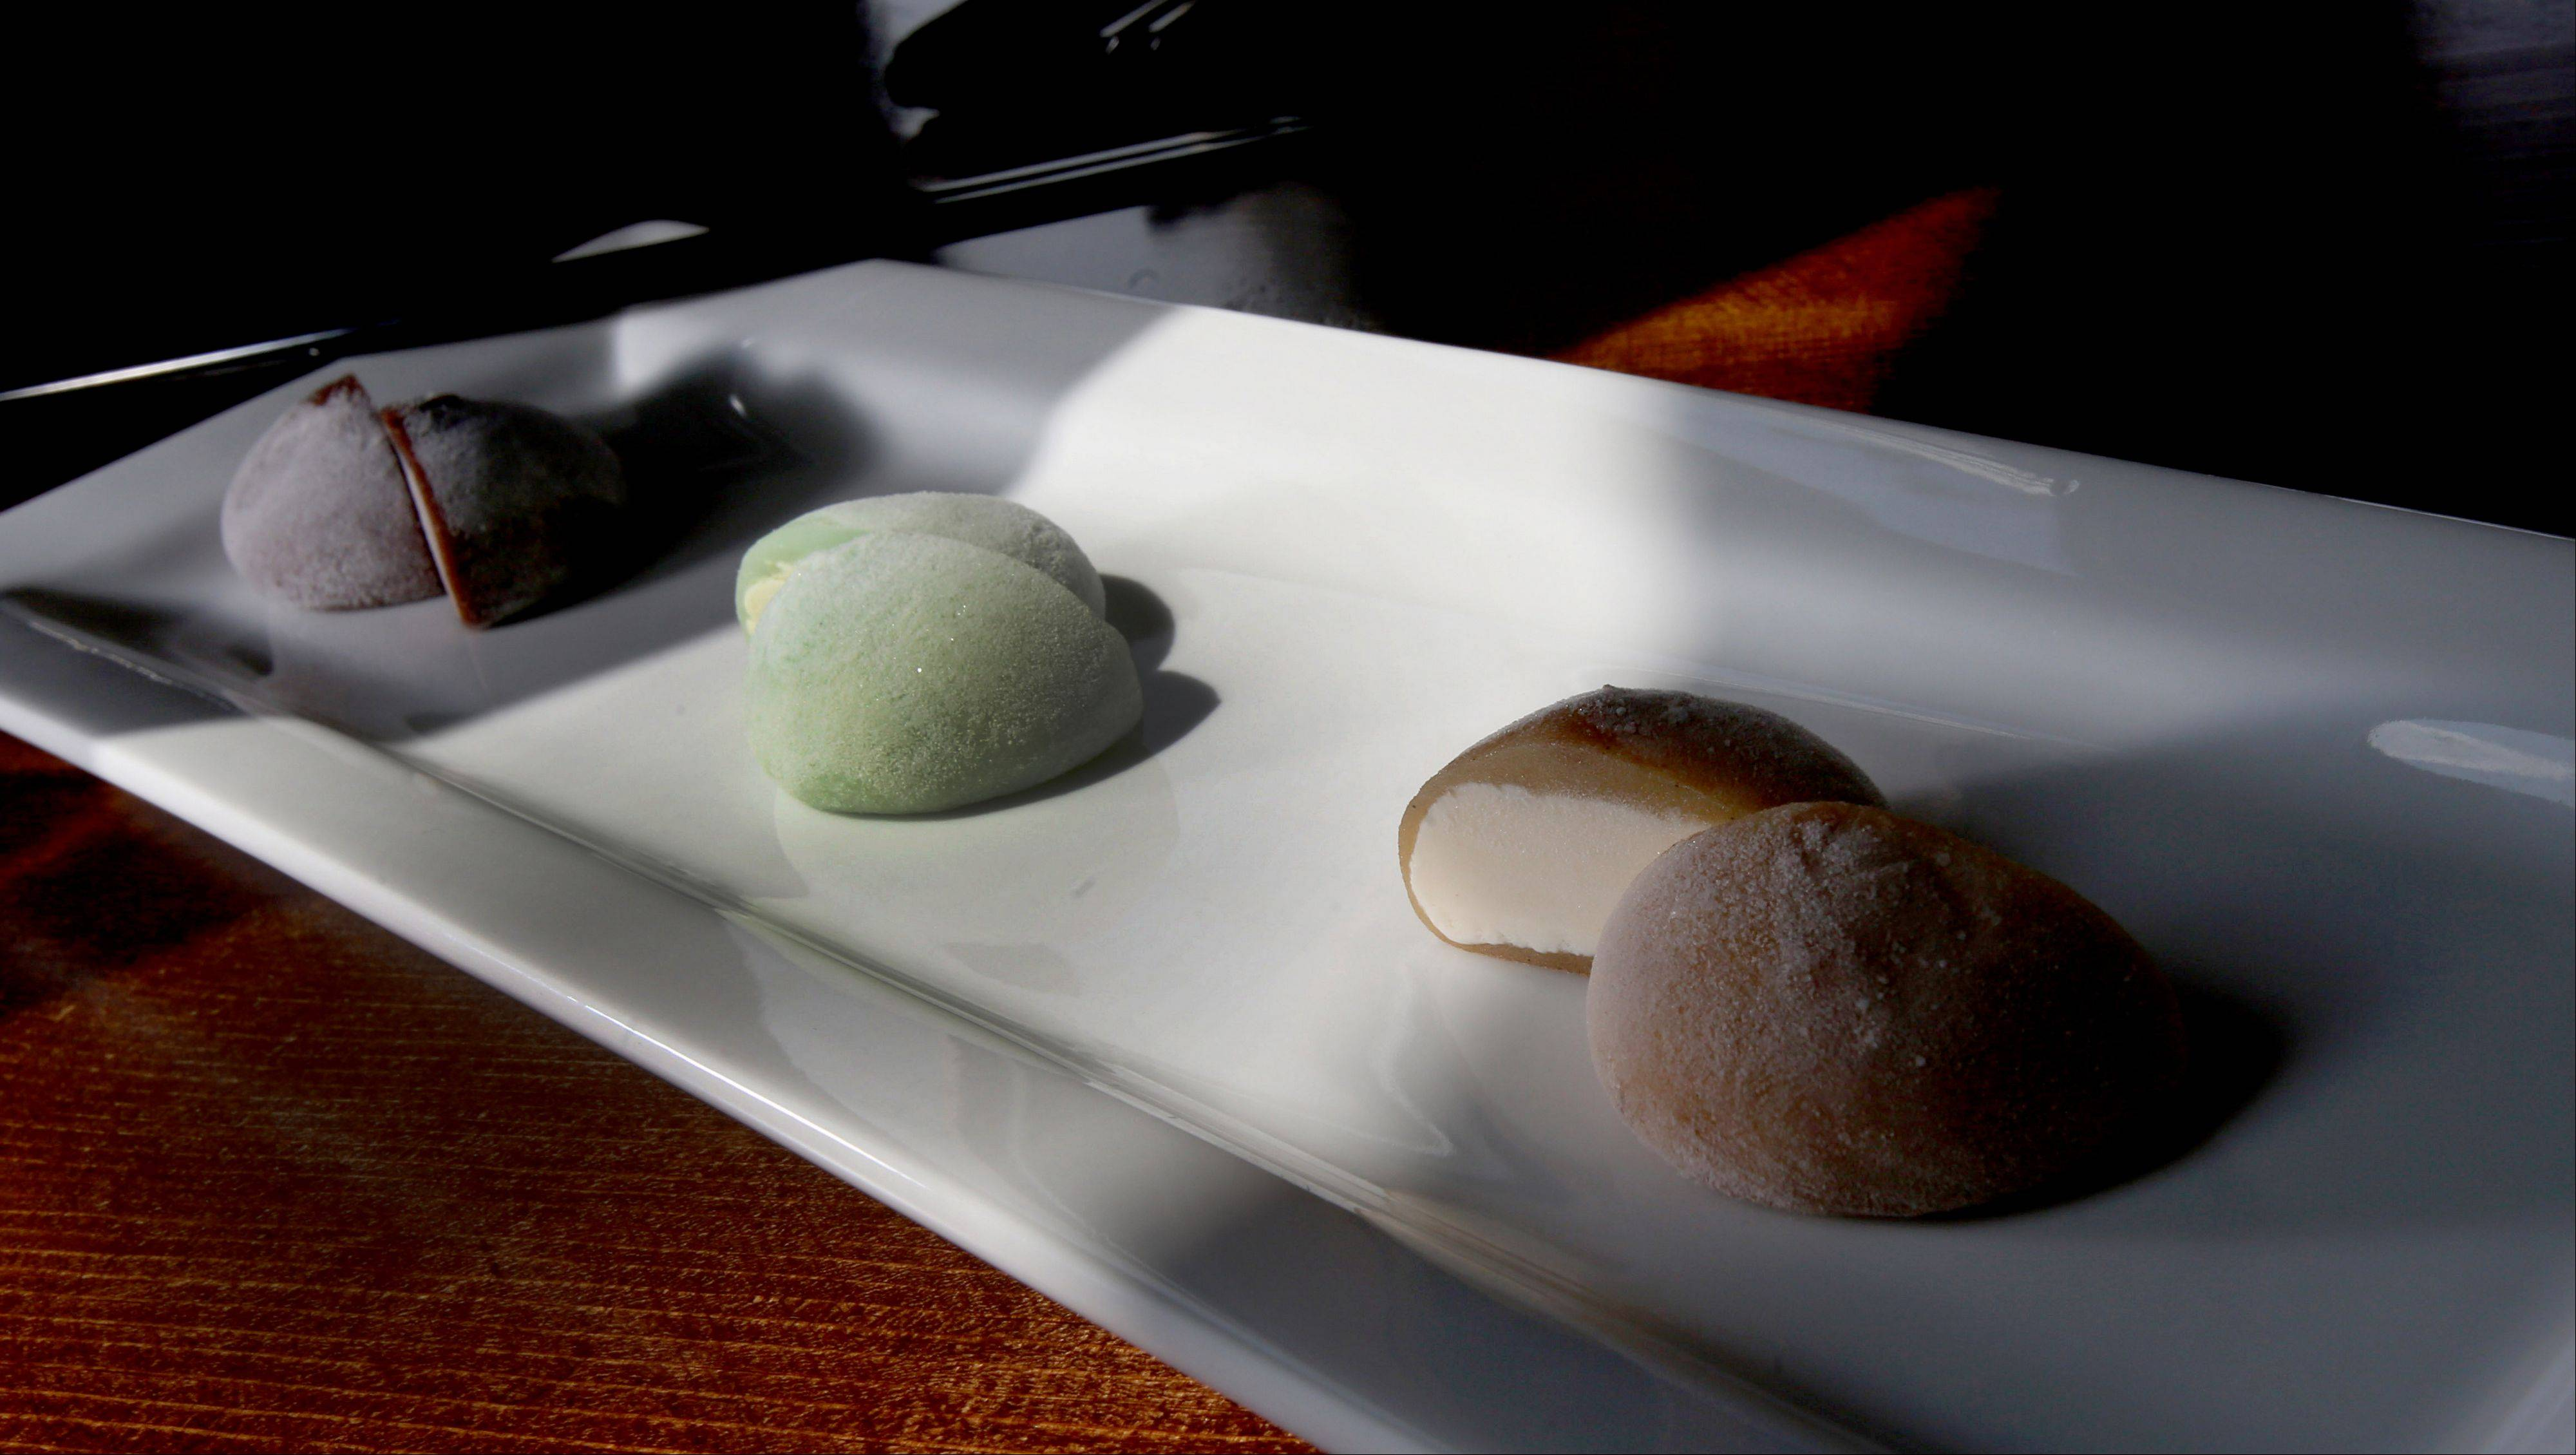 The flavorful, colorful mochi is just one dessert option at 8,000 Miles.